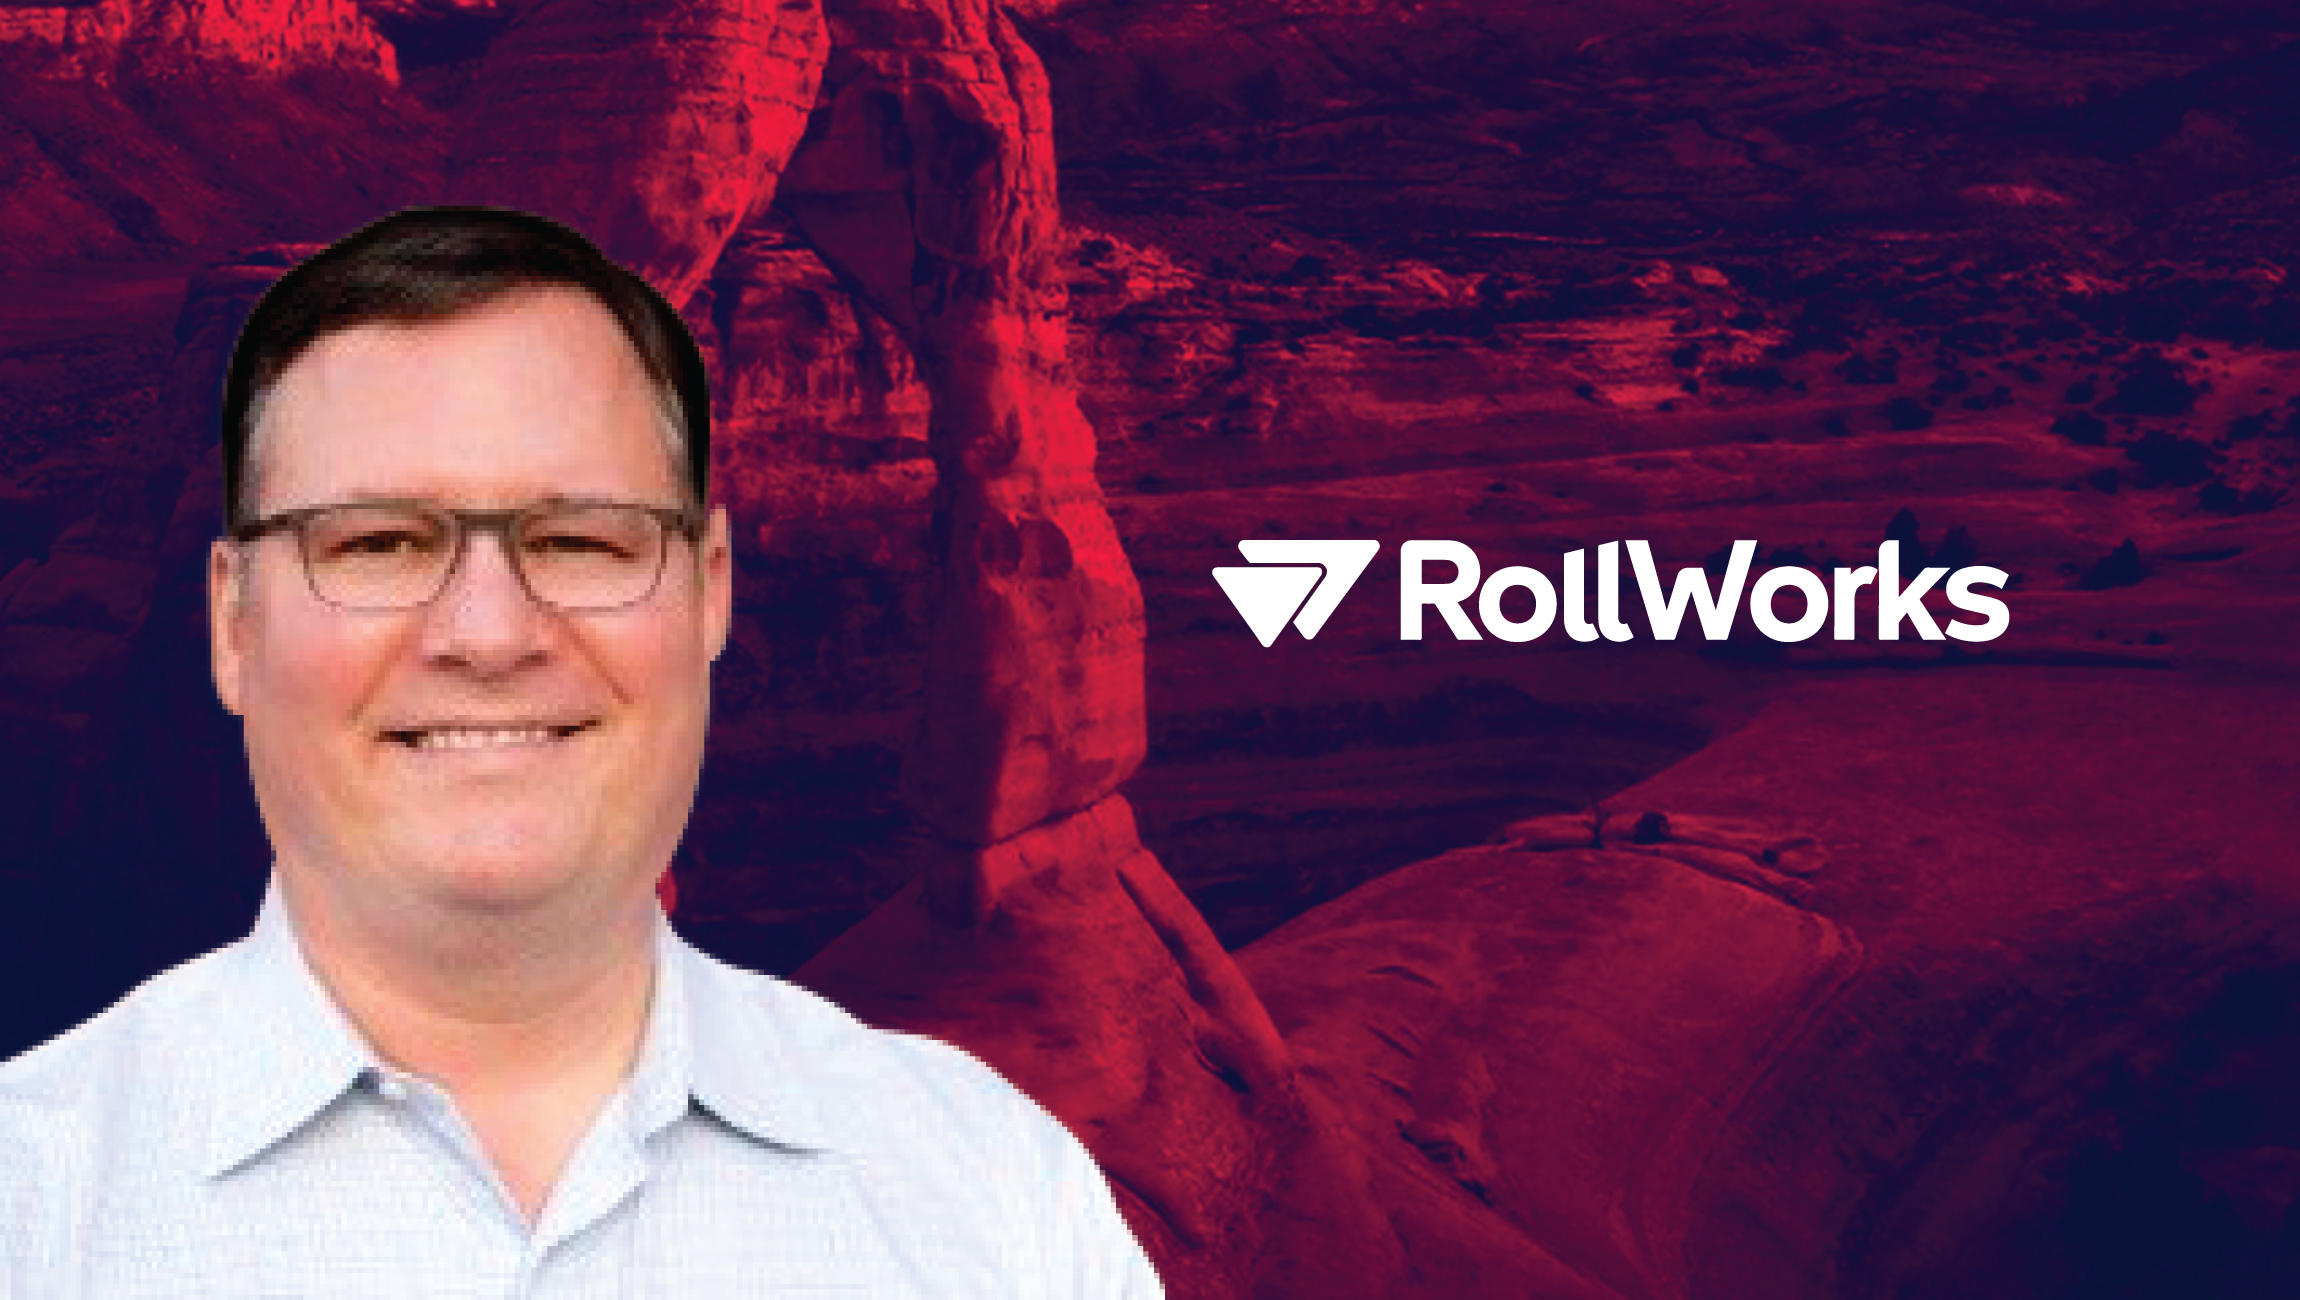 SalesTech Interview With John Dent, VP Customer Operations, RollWorks